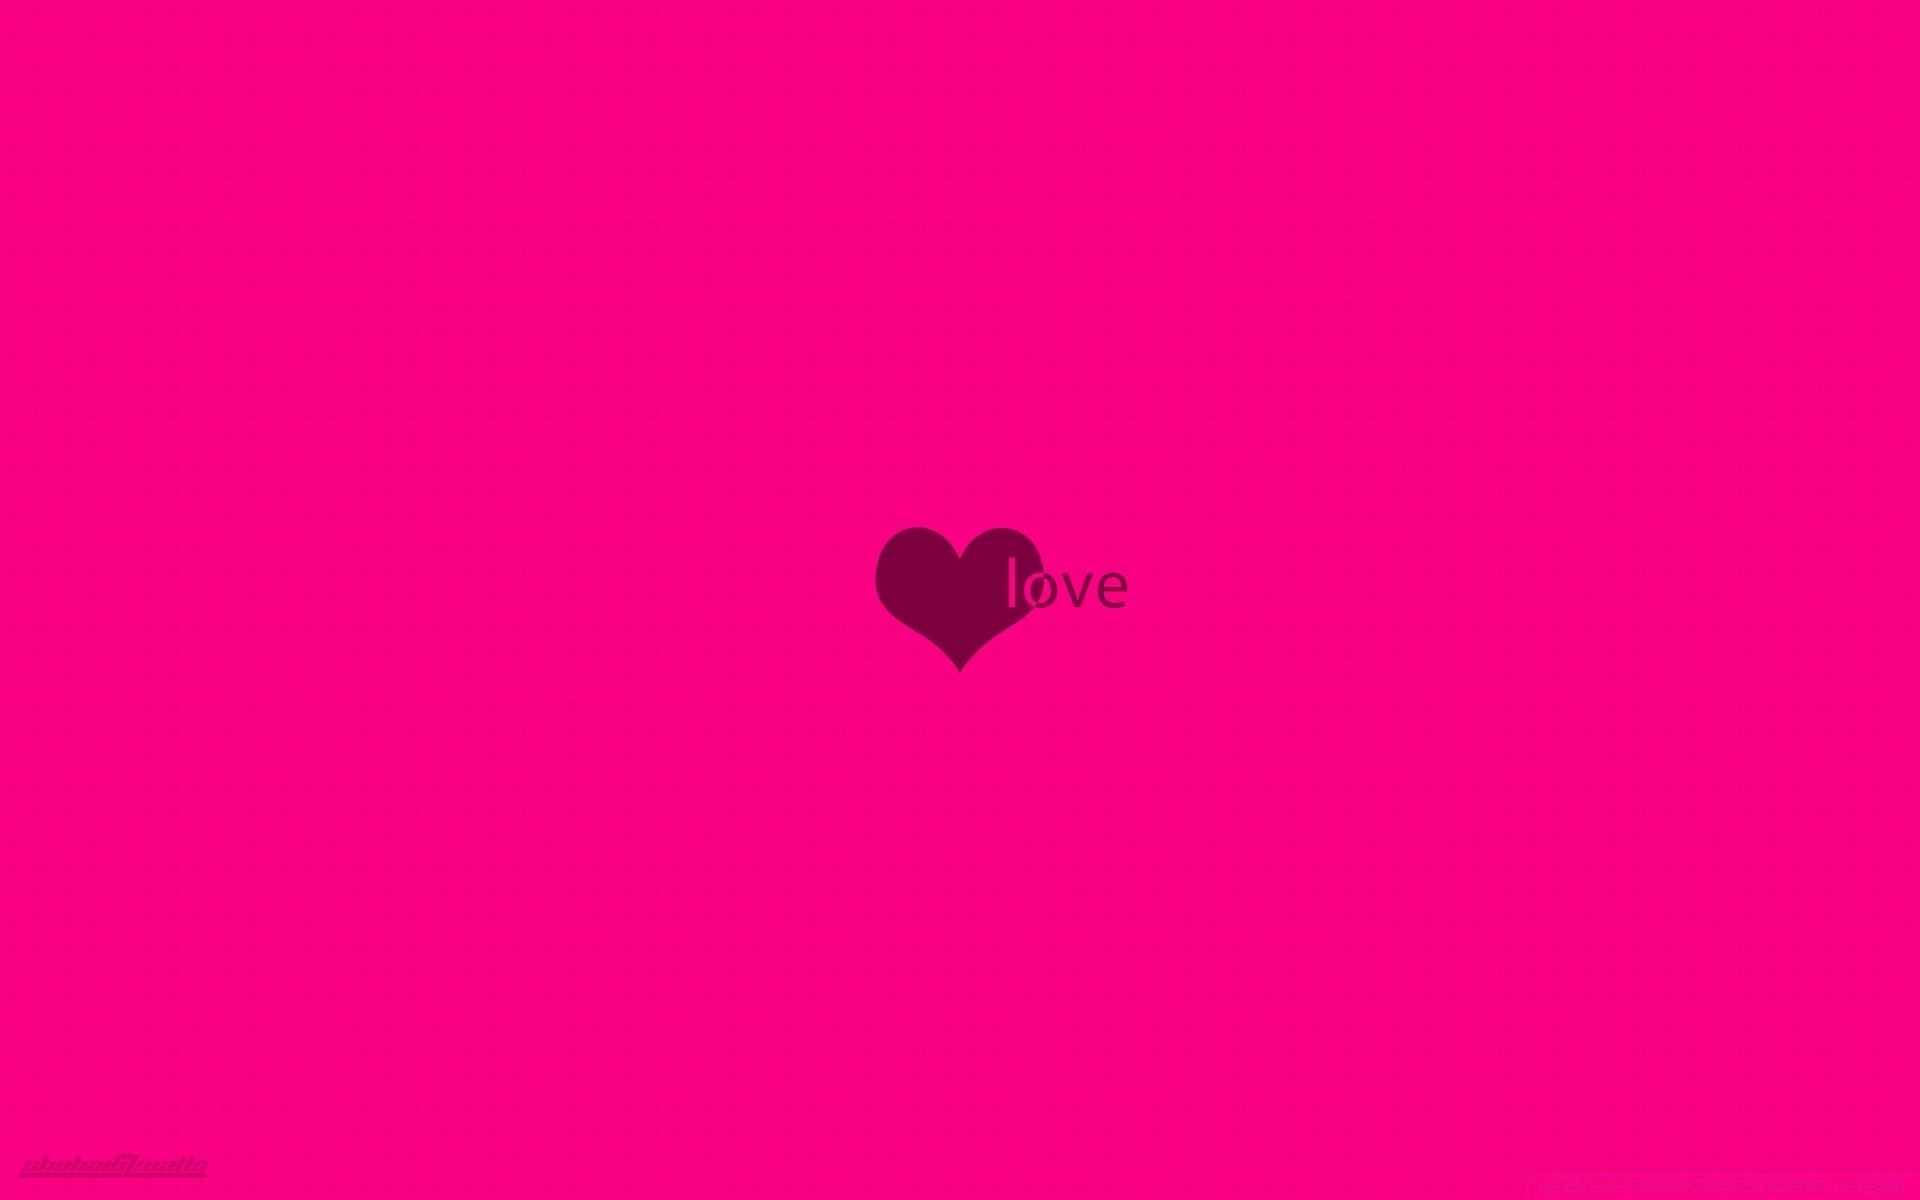 love. android wallpapers for free.